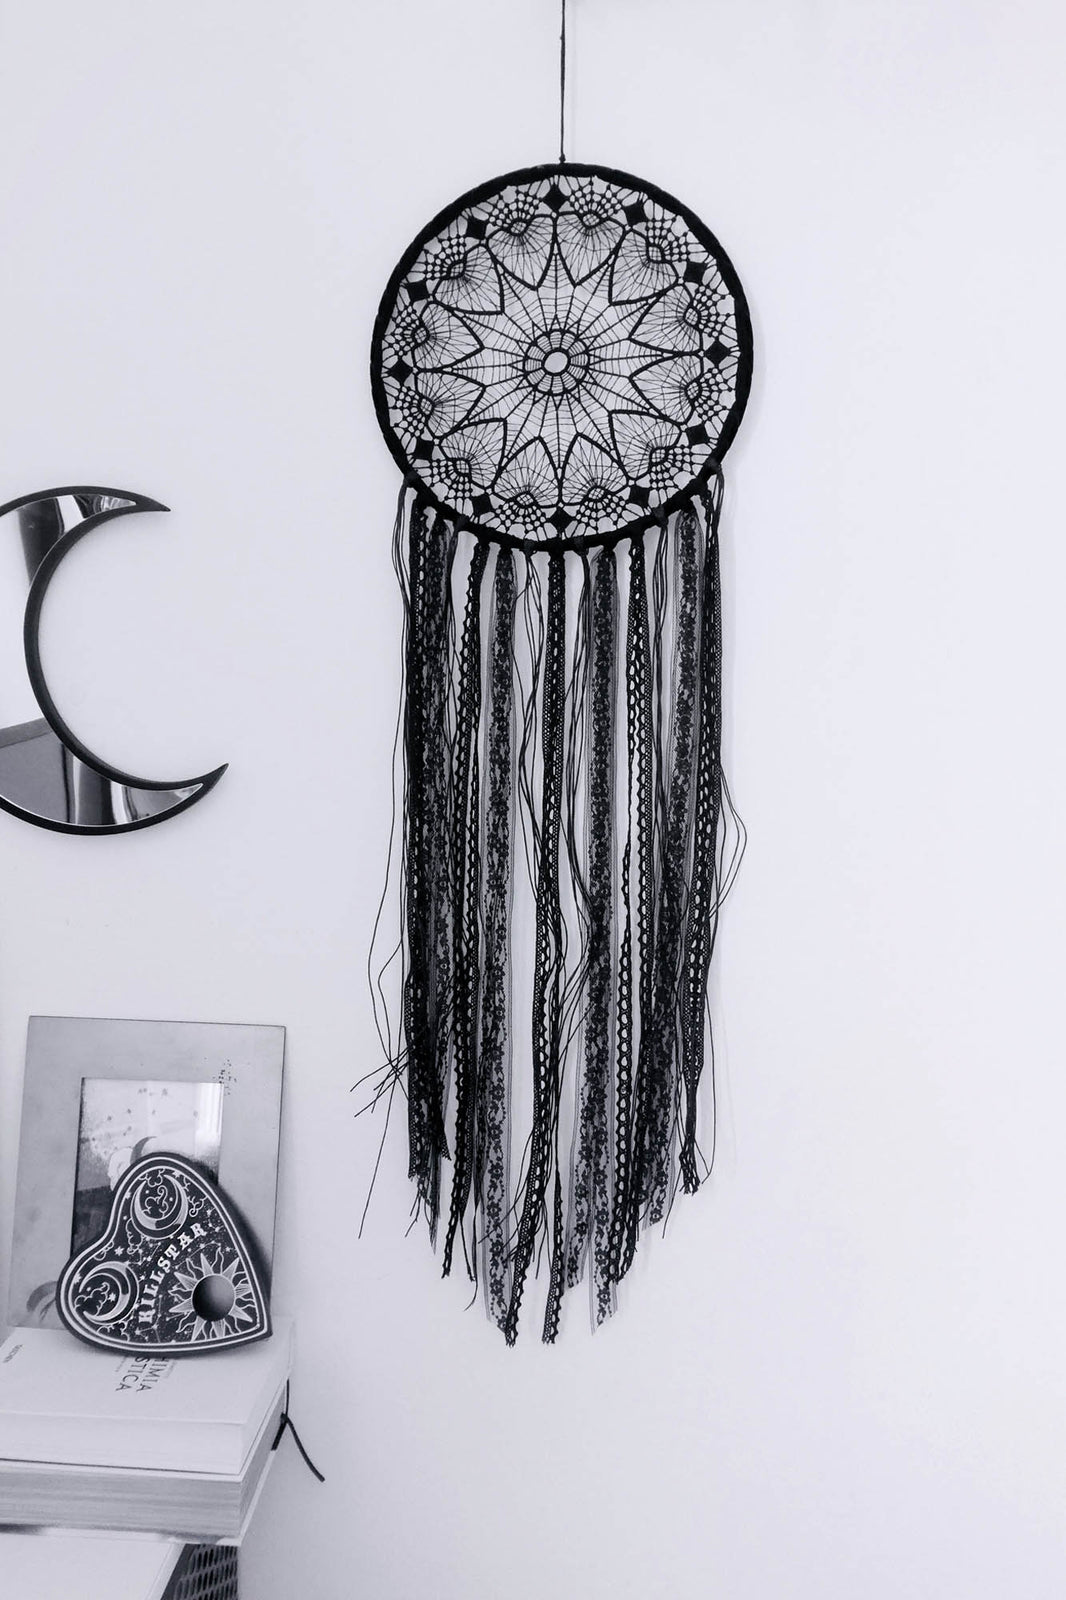 Mandela Effect Dream Catcher